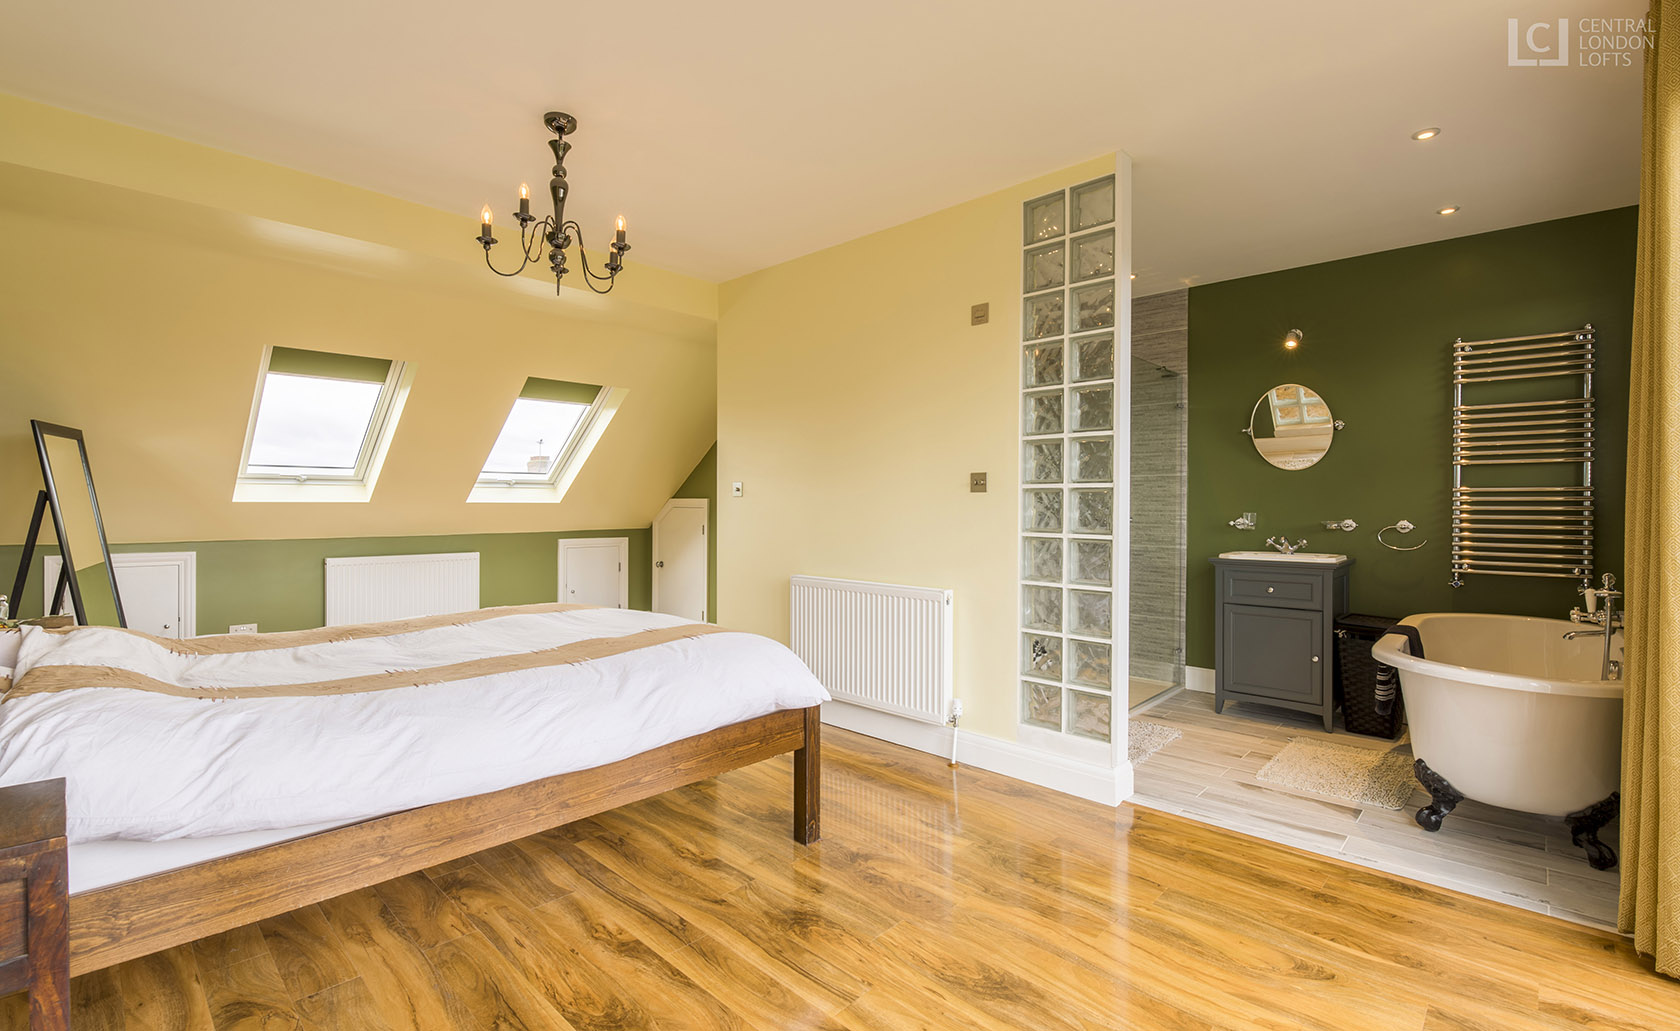 Wimbledon Chase Loft Conversion Bedroom & Bathroom